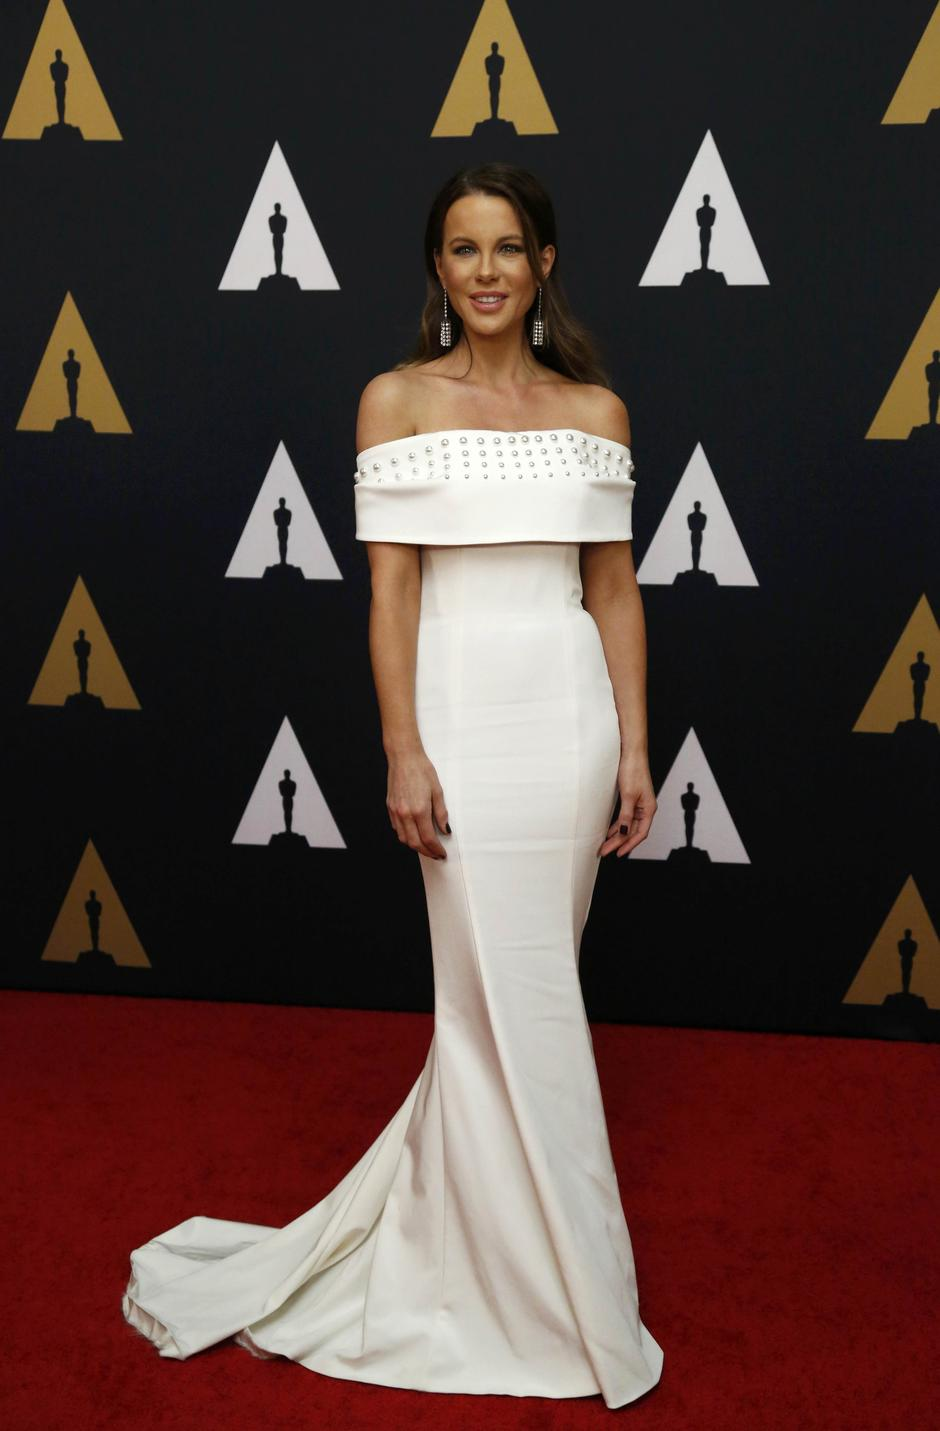 Actress Kate Beckinsale arrives at the 8th Annual Governors Awards in Los Angeles | Autor: MARIO ANZUONI